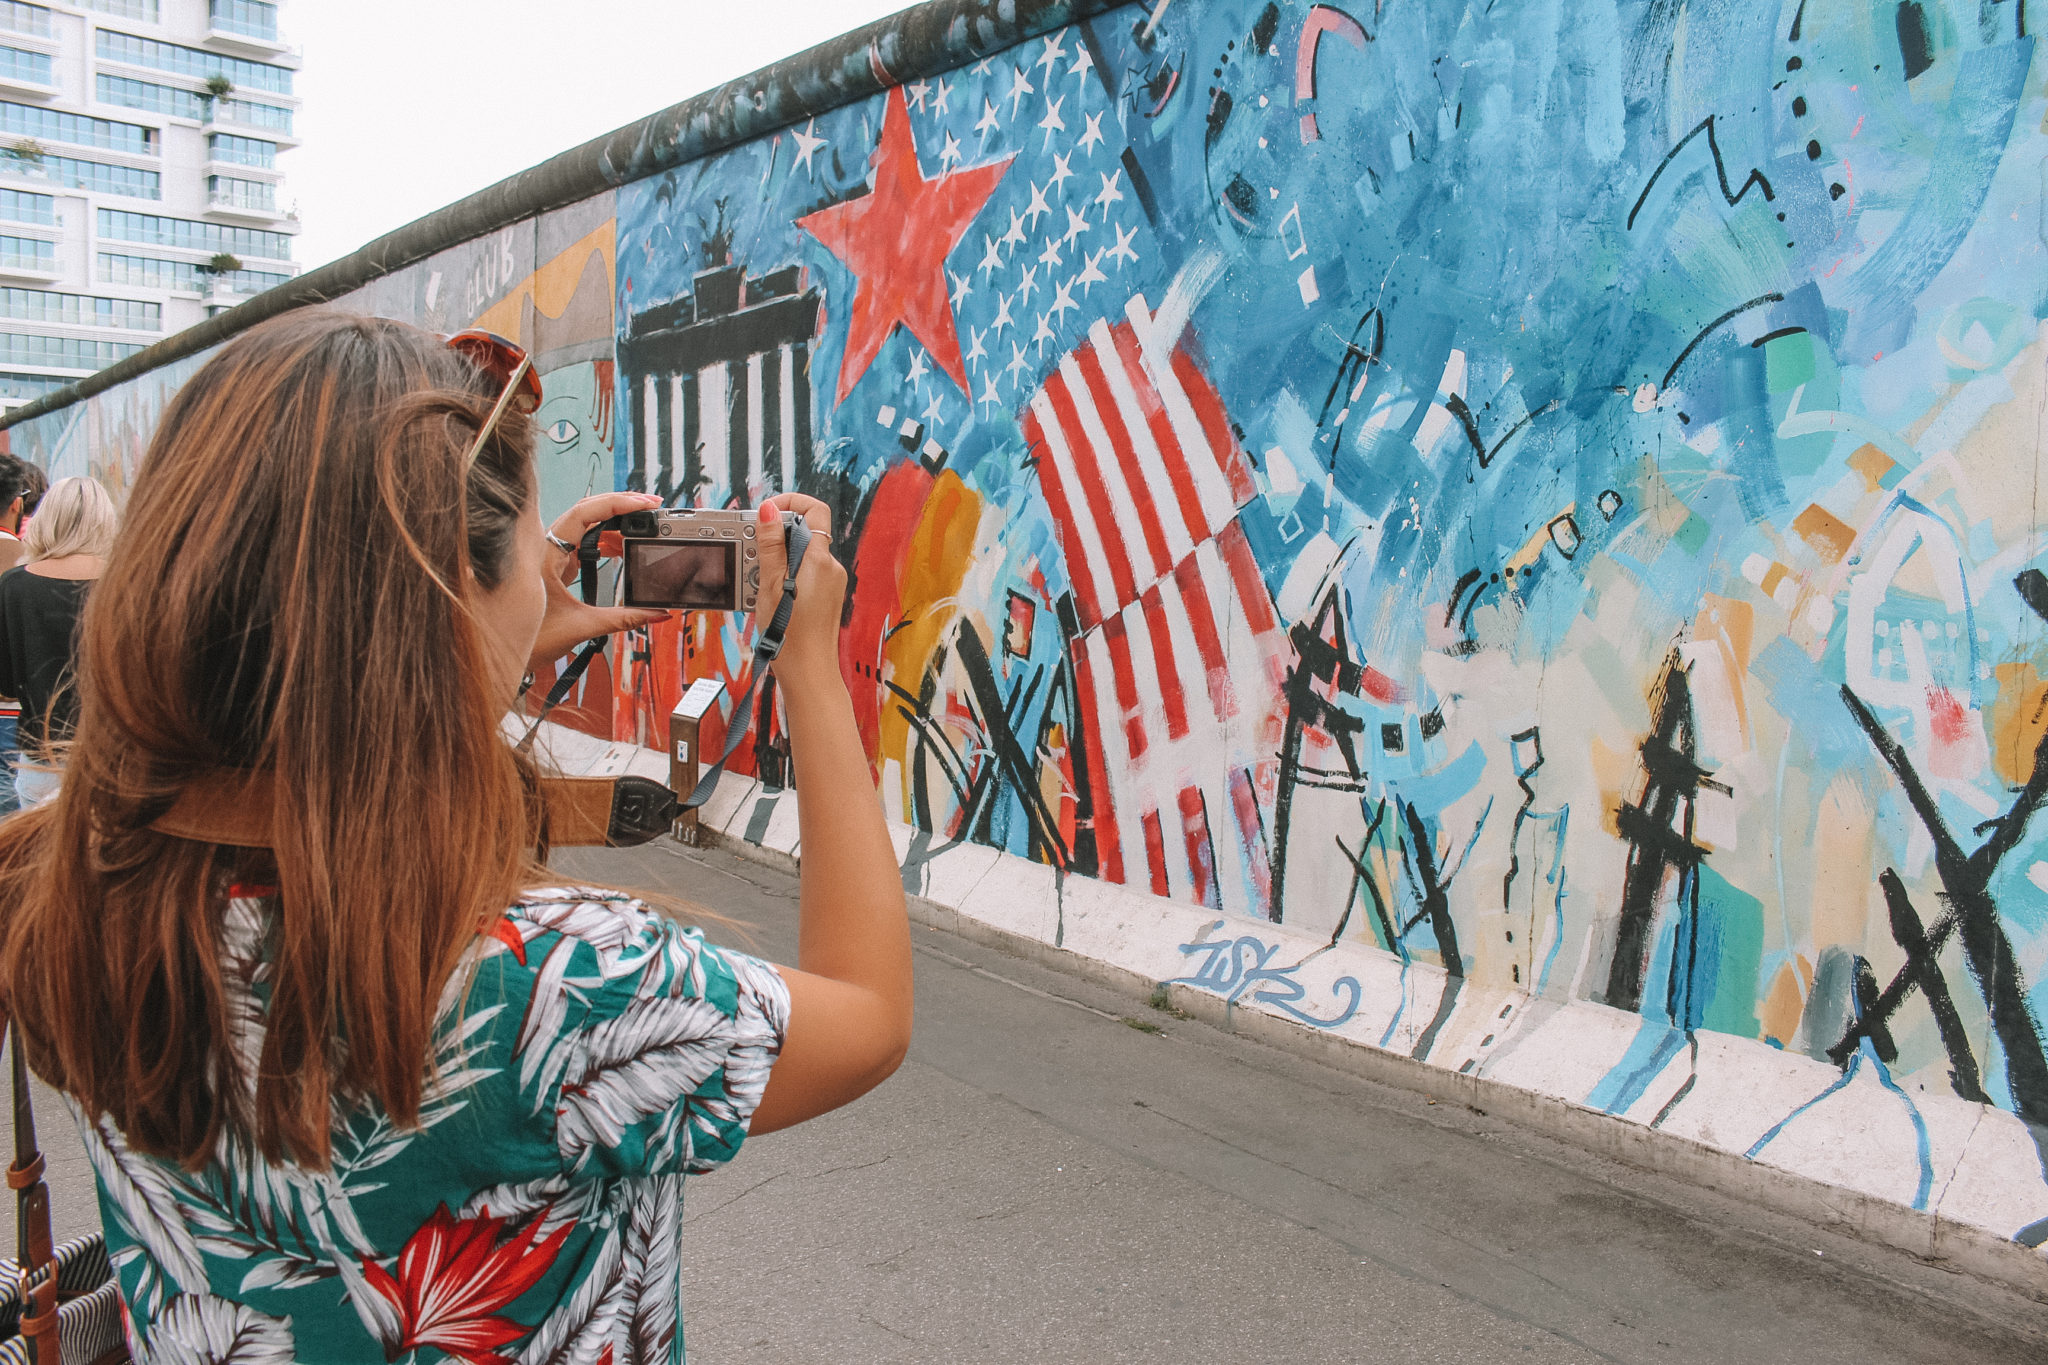 How to spend a weekend in Berlin   Travel Blog   Things to do